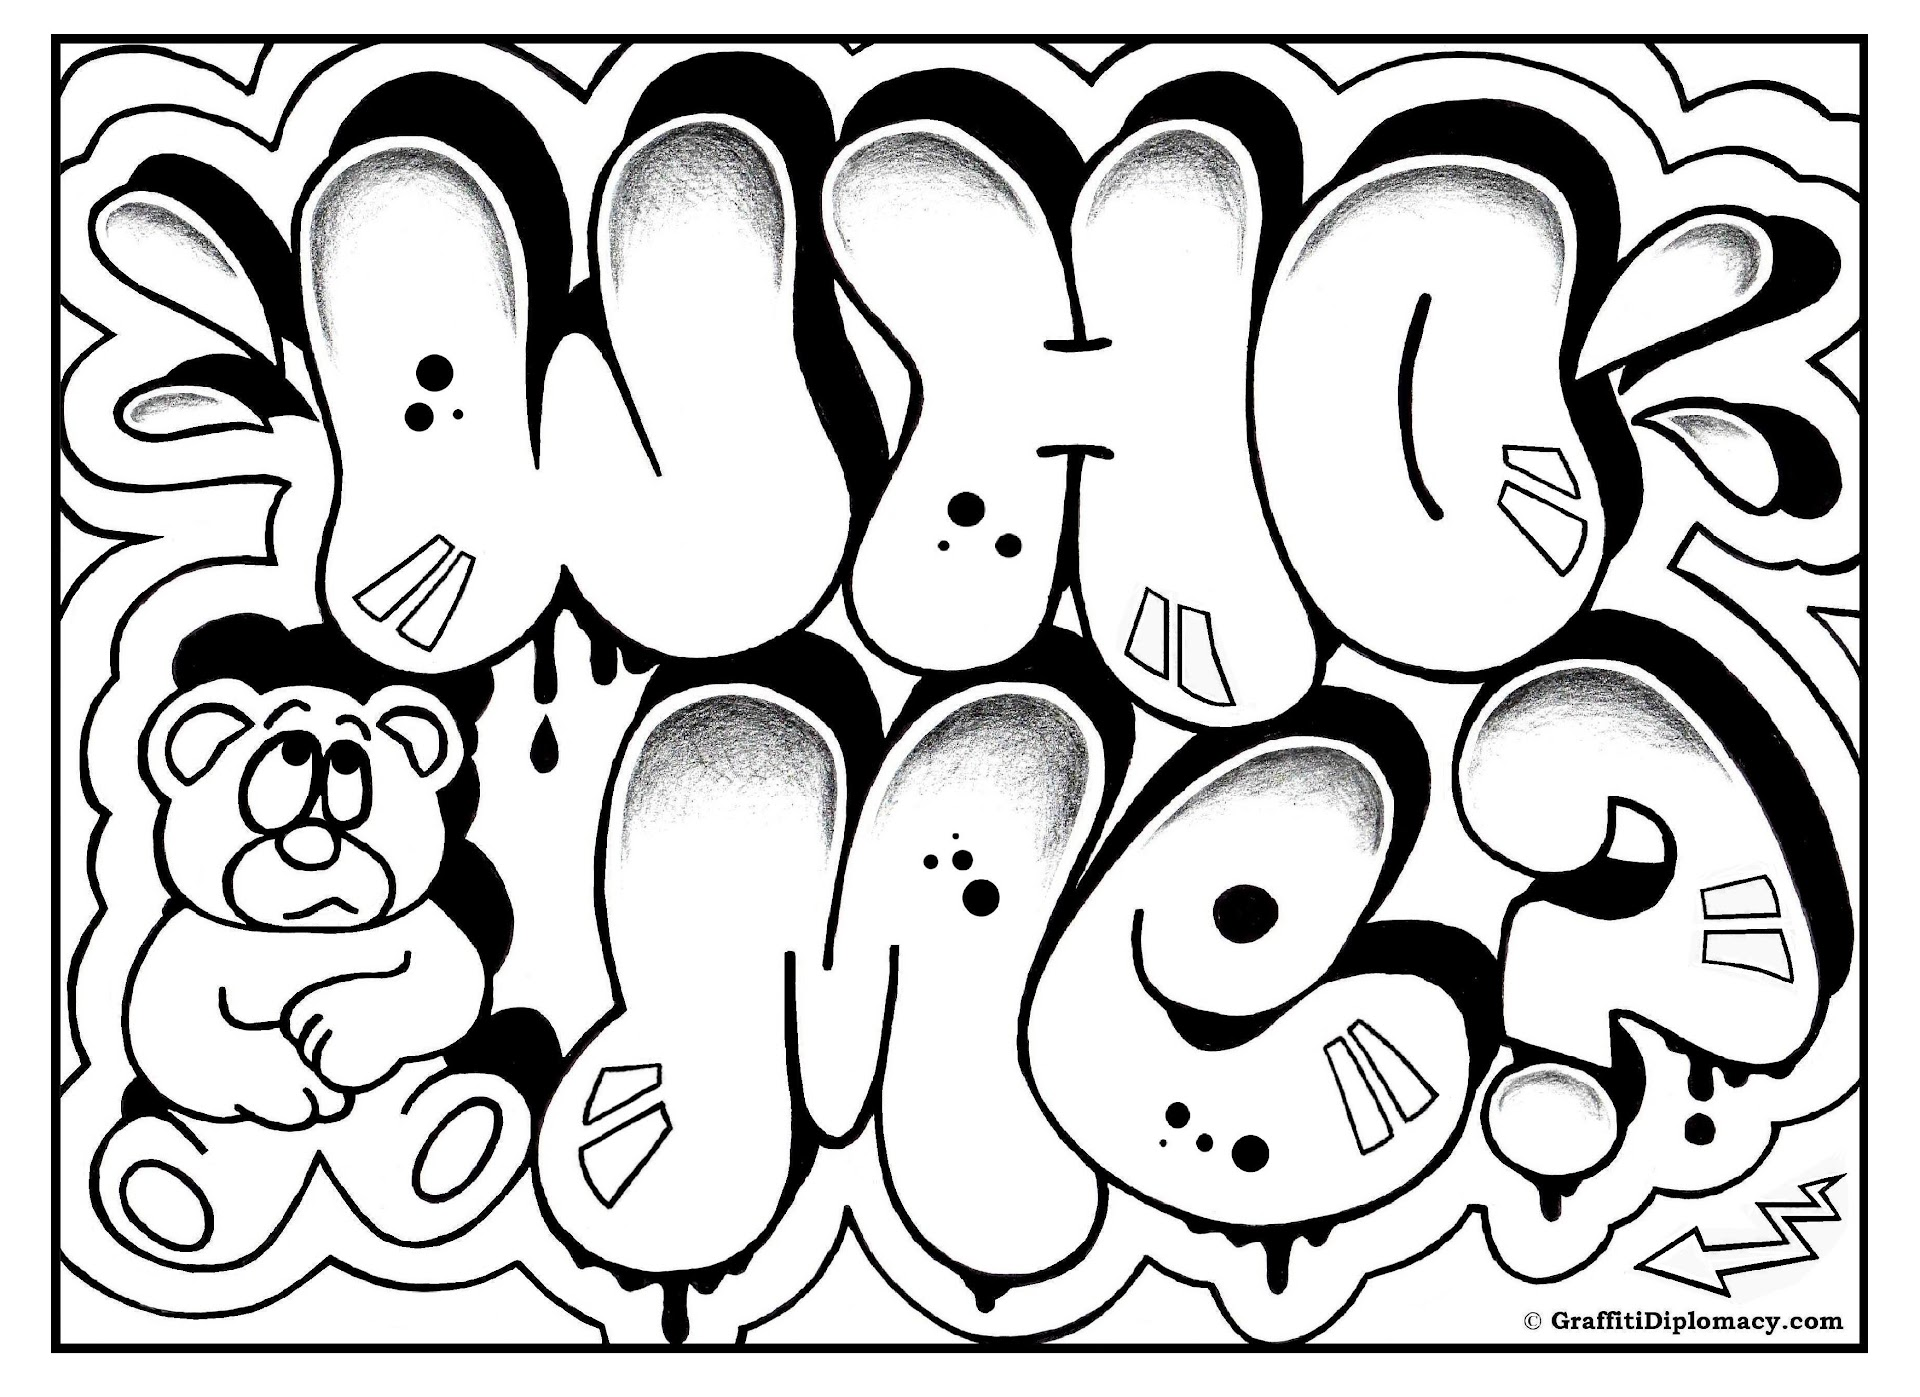 Top Graffiti Words Coloring Pages For Teenagers Photos Kids Children And Adult Coloring Pages